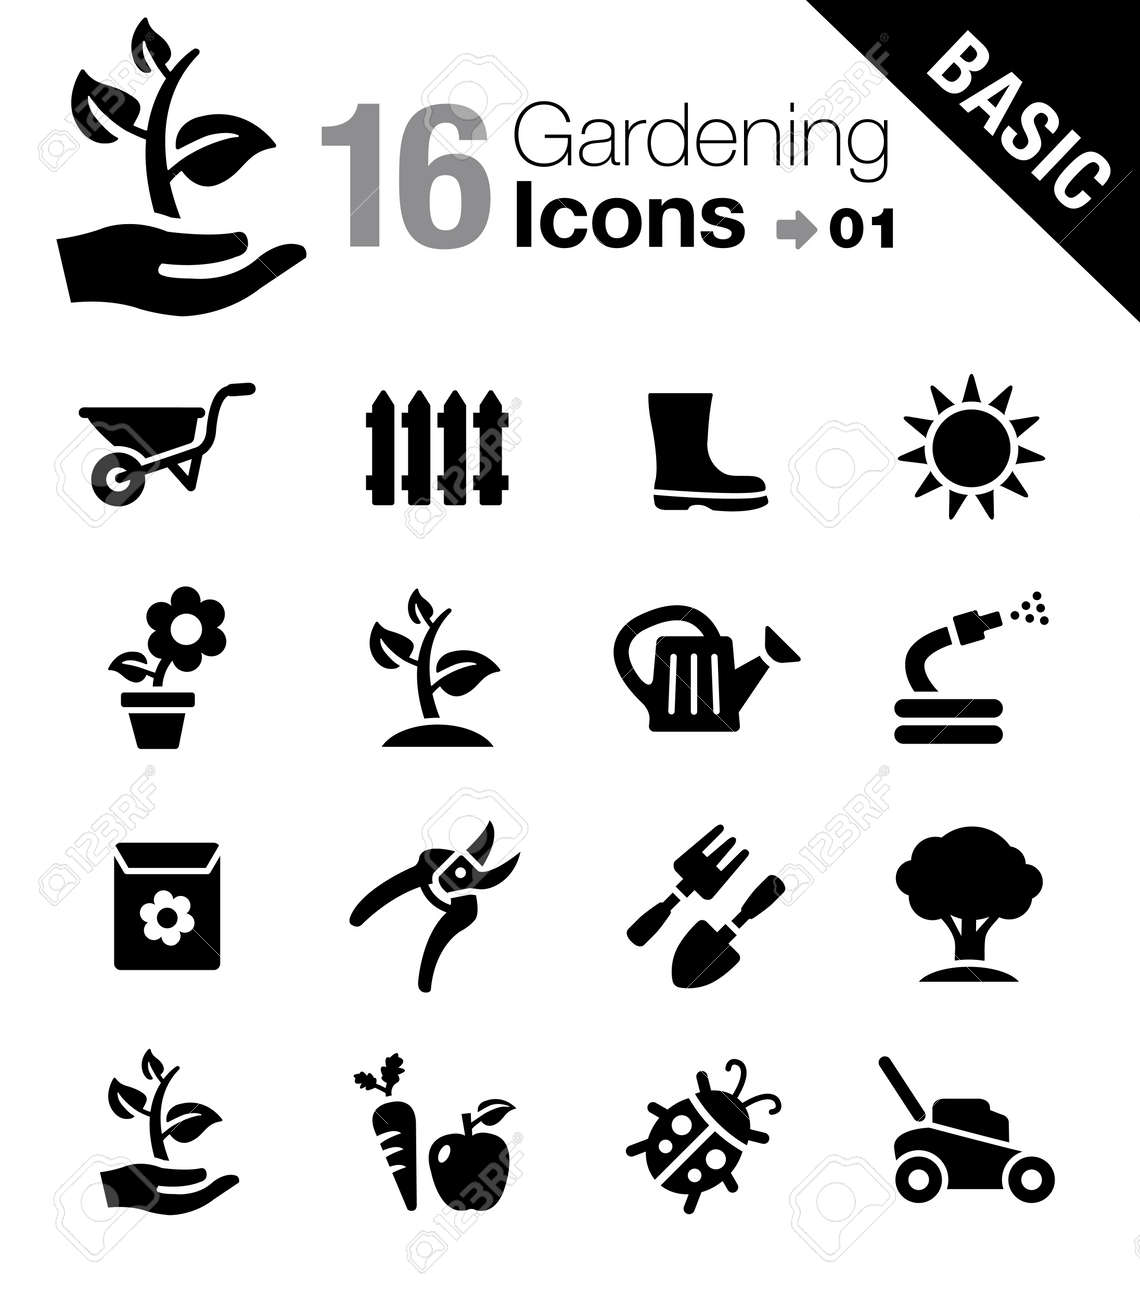 Basic Gardening Icons Royalty Free Cliparts Vectors And Stock